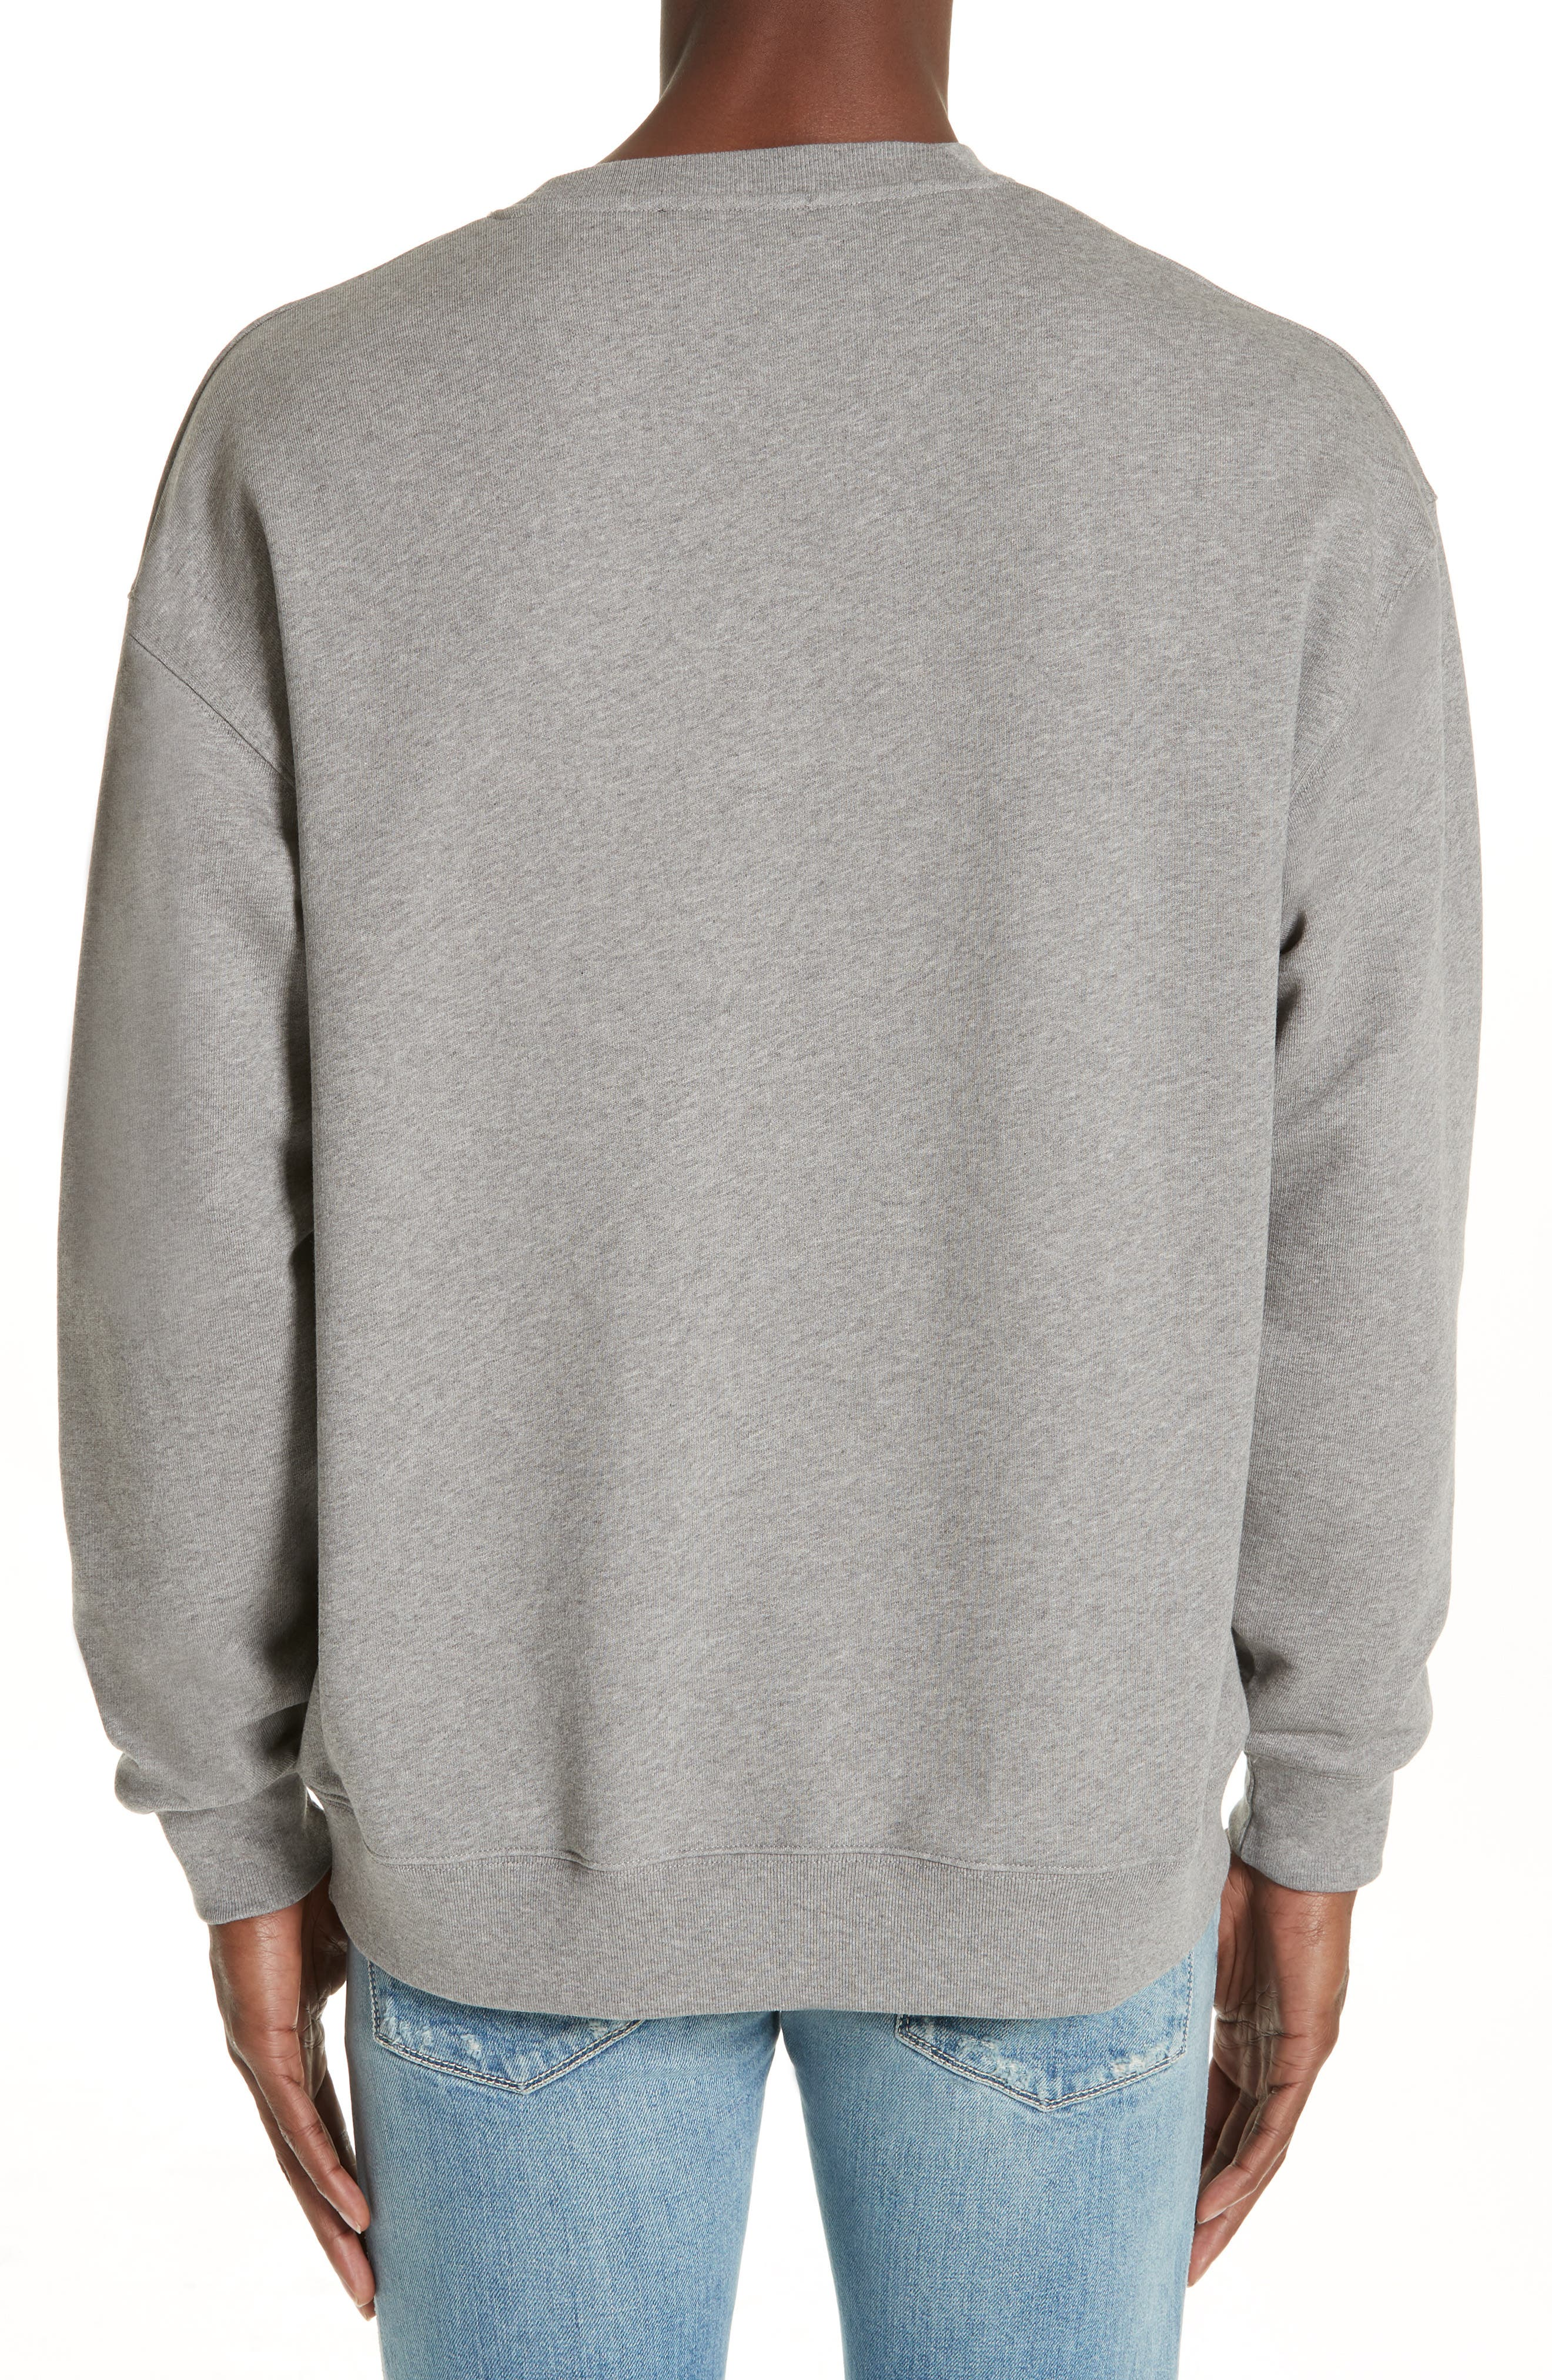 ACNE STUDIOS,                             Forba Face Sweatshirt,                             Alternate thumbnail 2, color,                             LIGHT GREY MELANGE